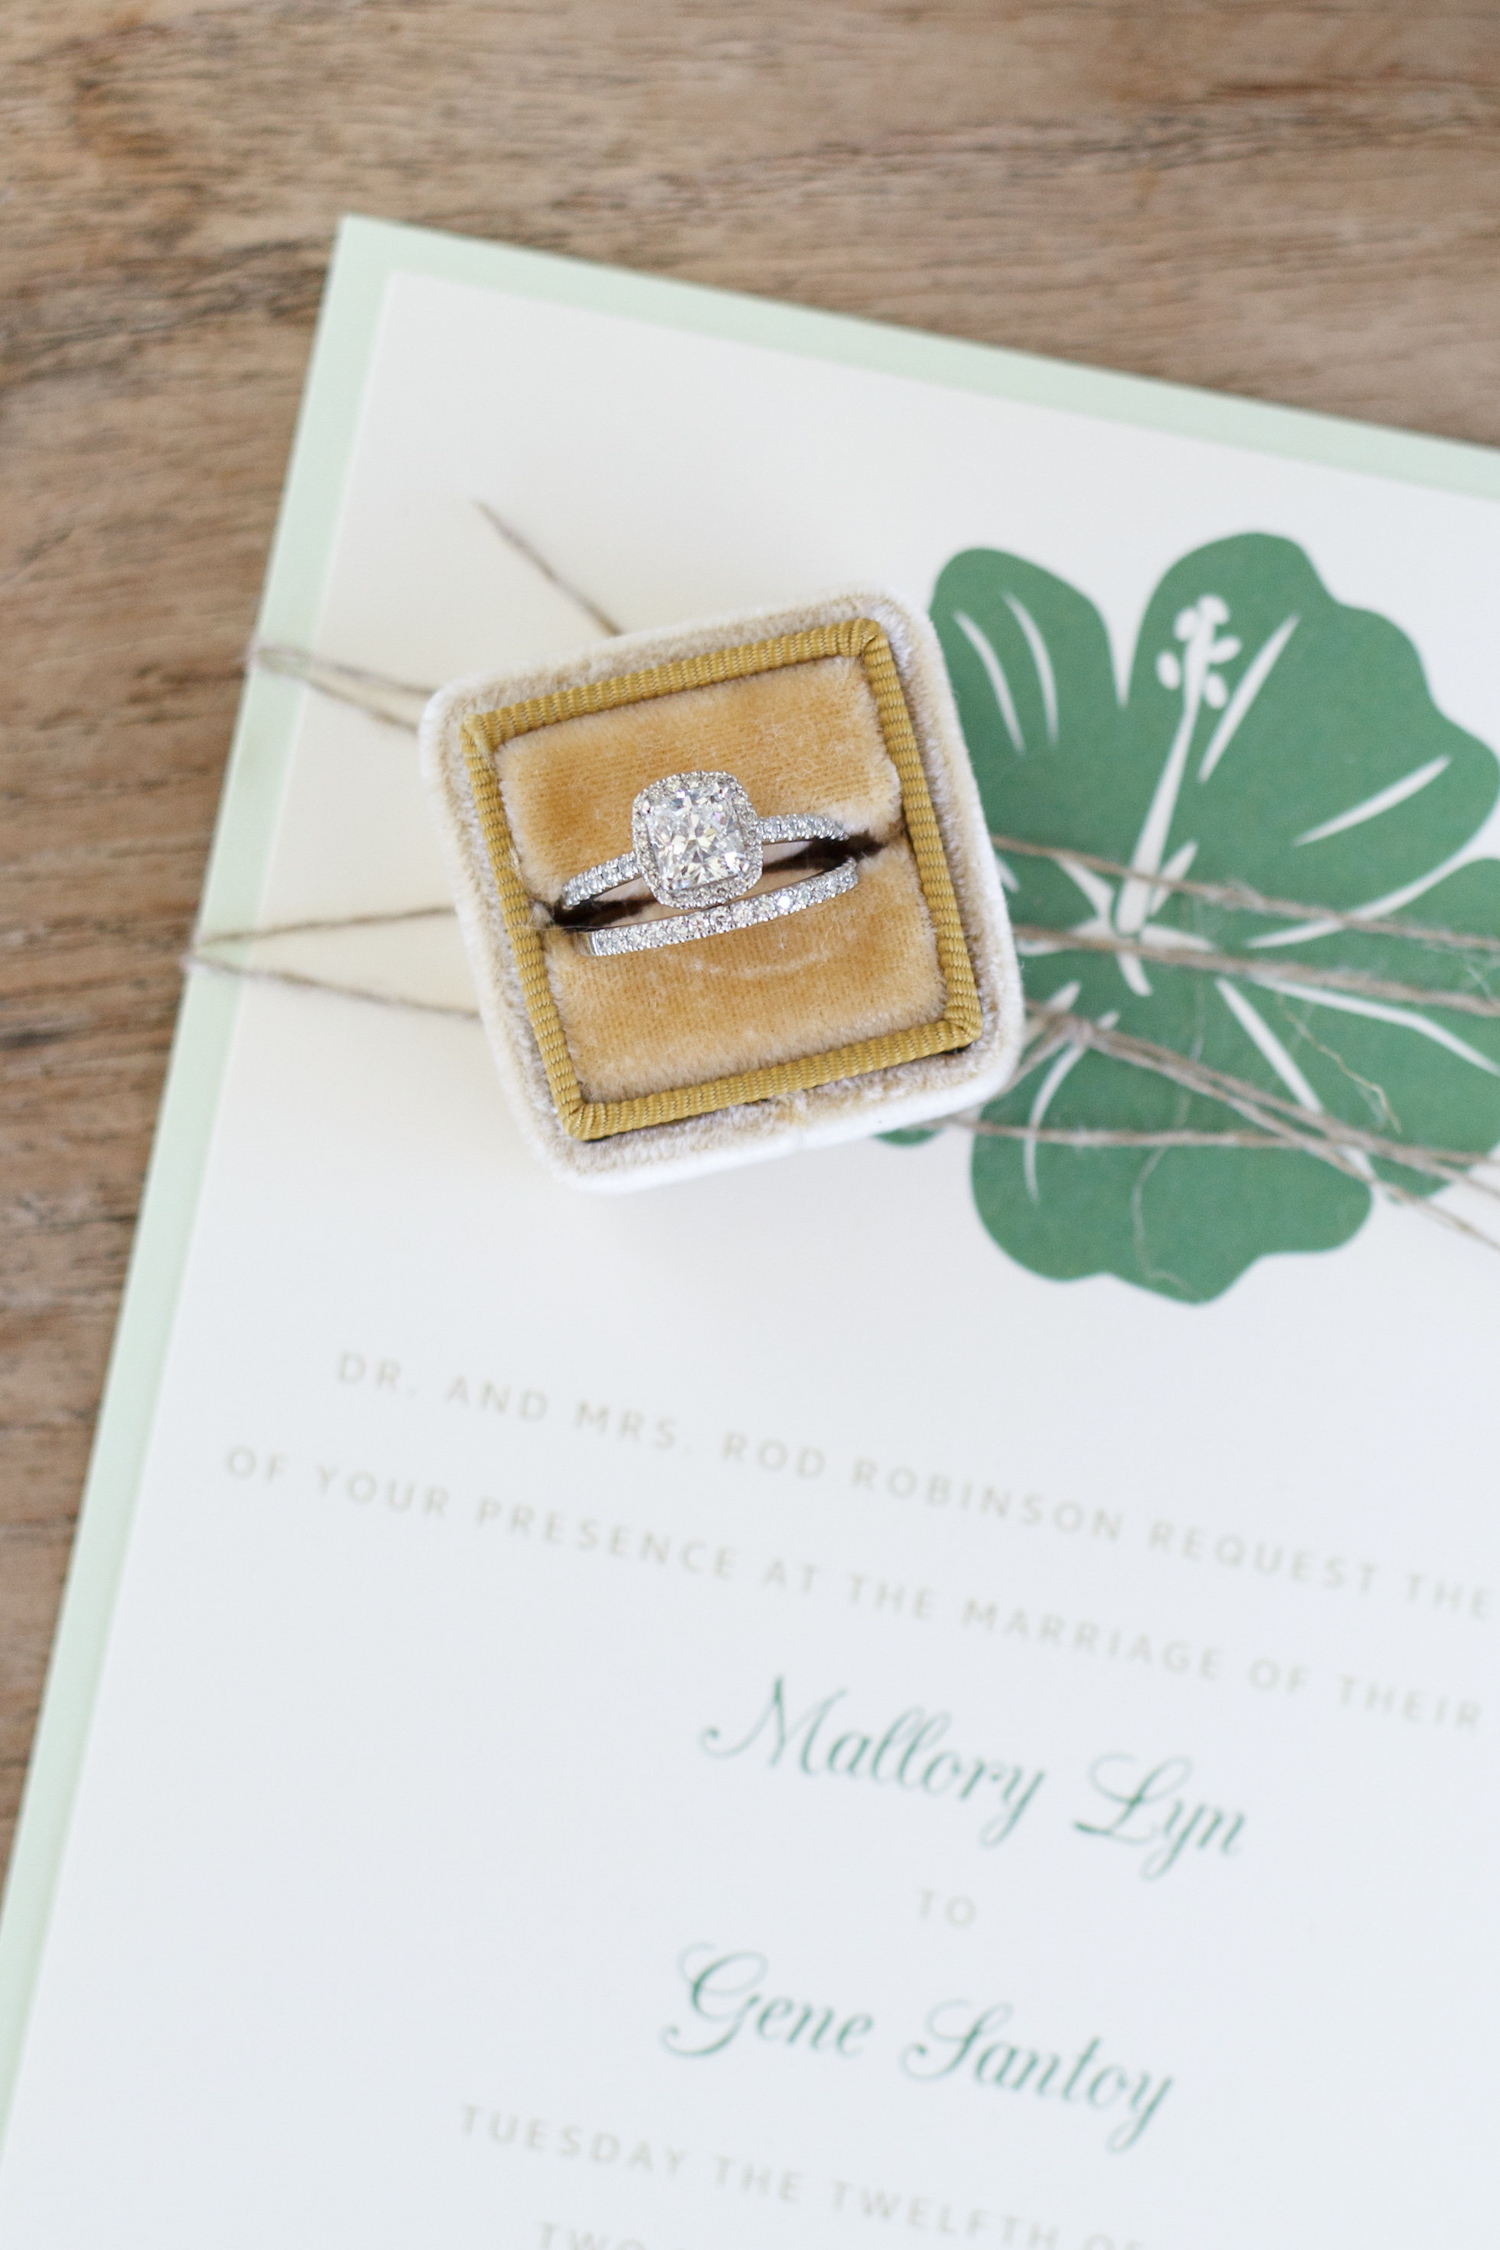 Wedding Ring on Invitation